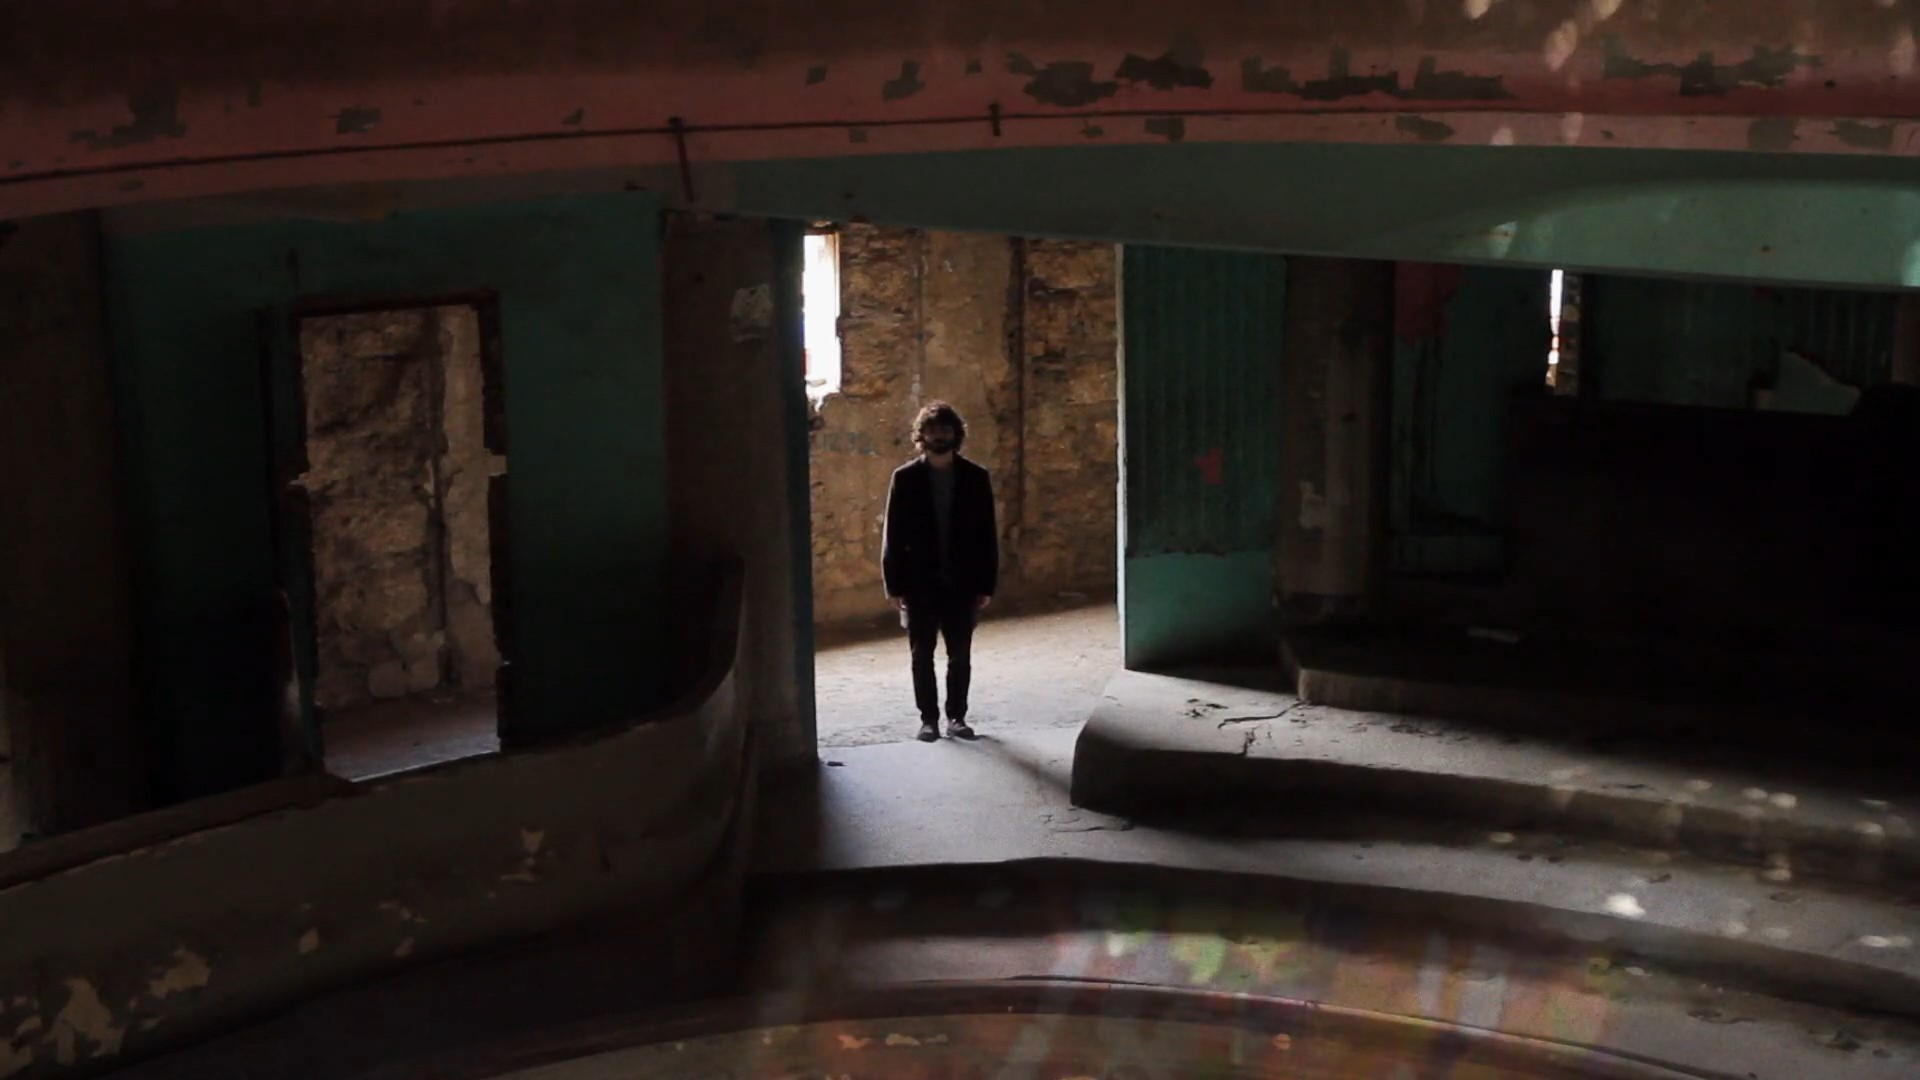 Still from Interbellum's Ready To Dissolve music video, directed by Camille Cabbabé.